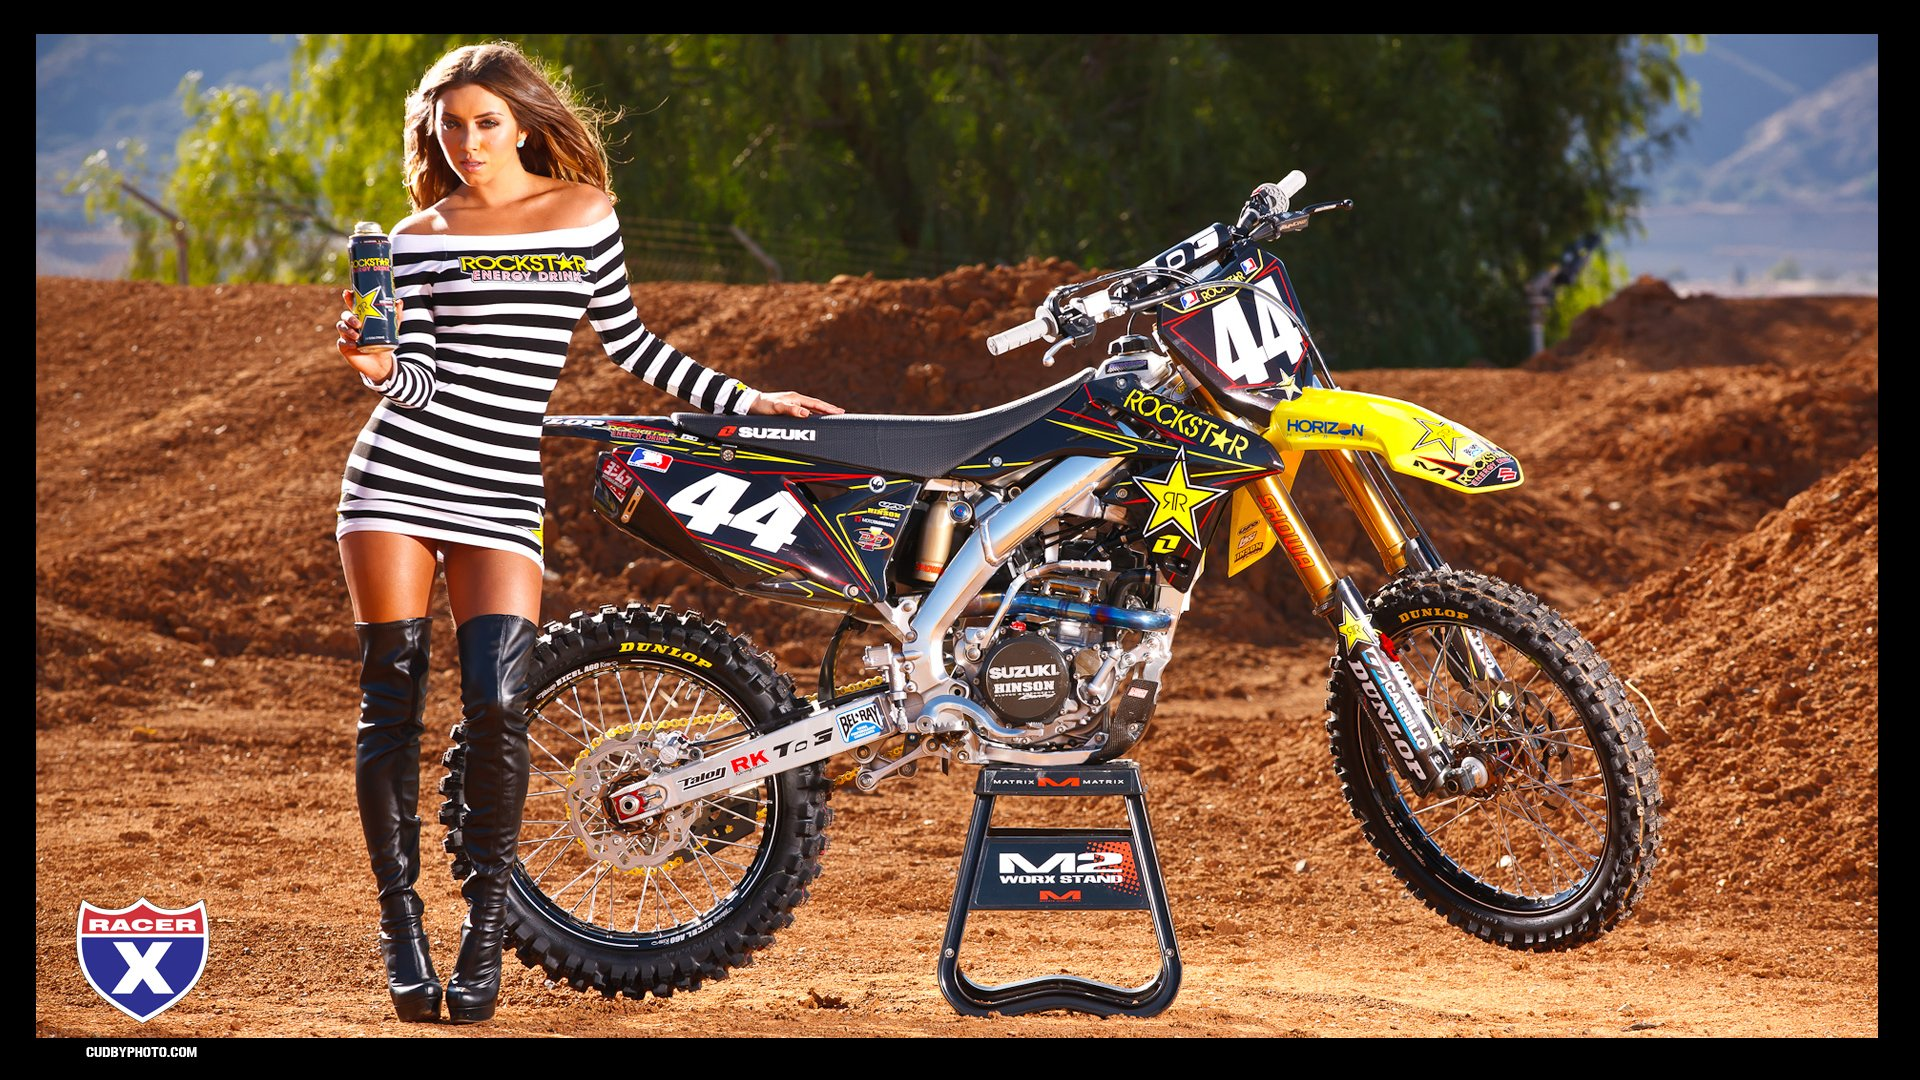 Rock racing girls